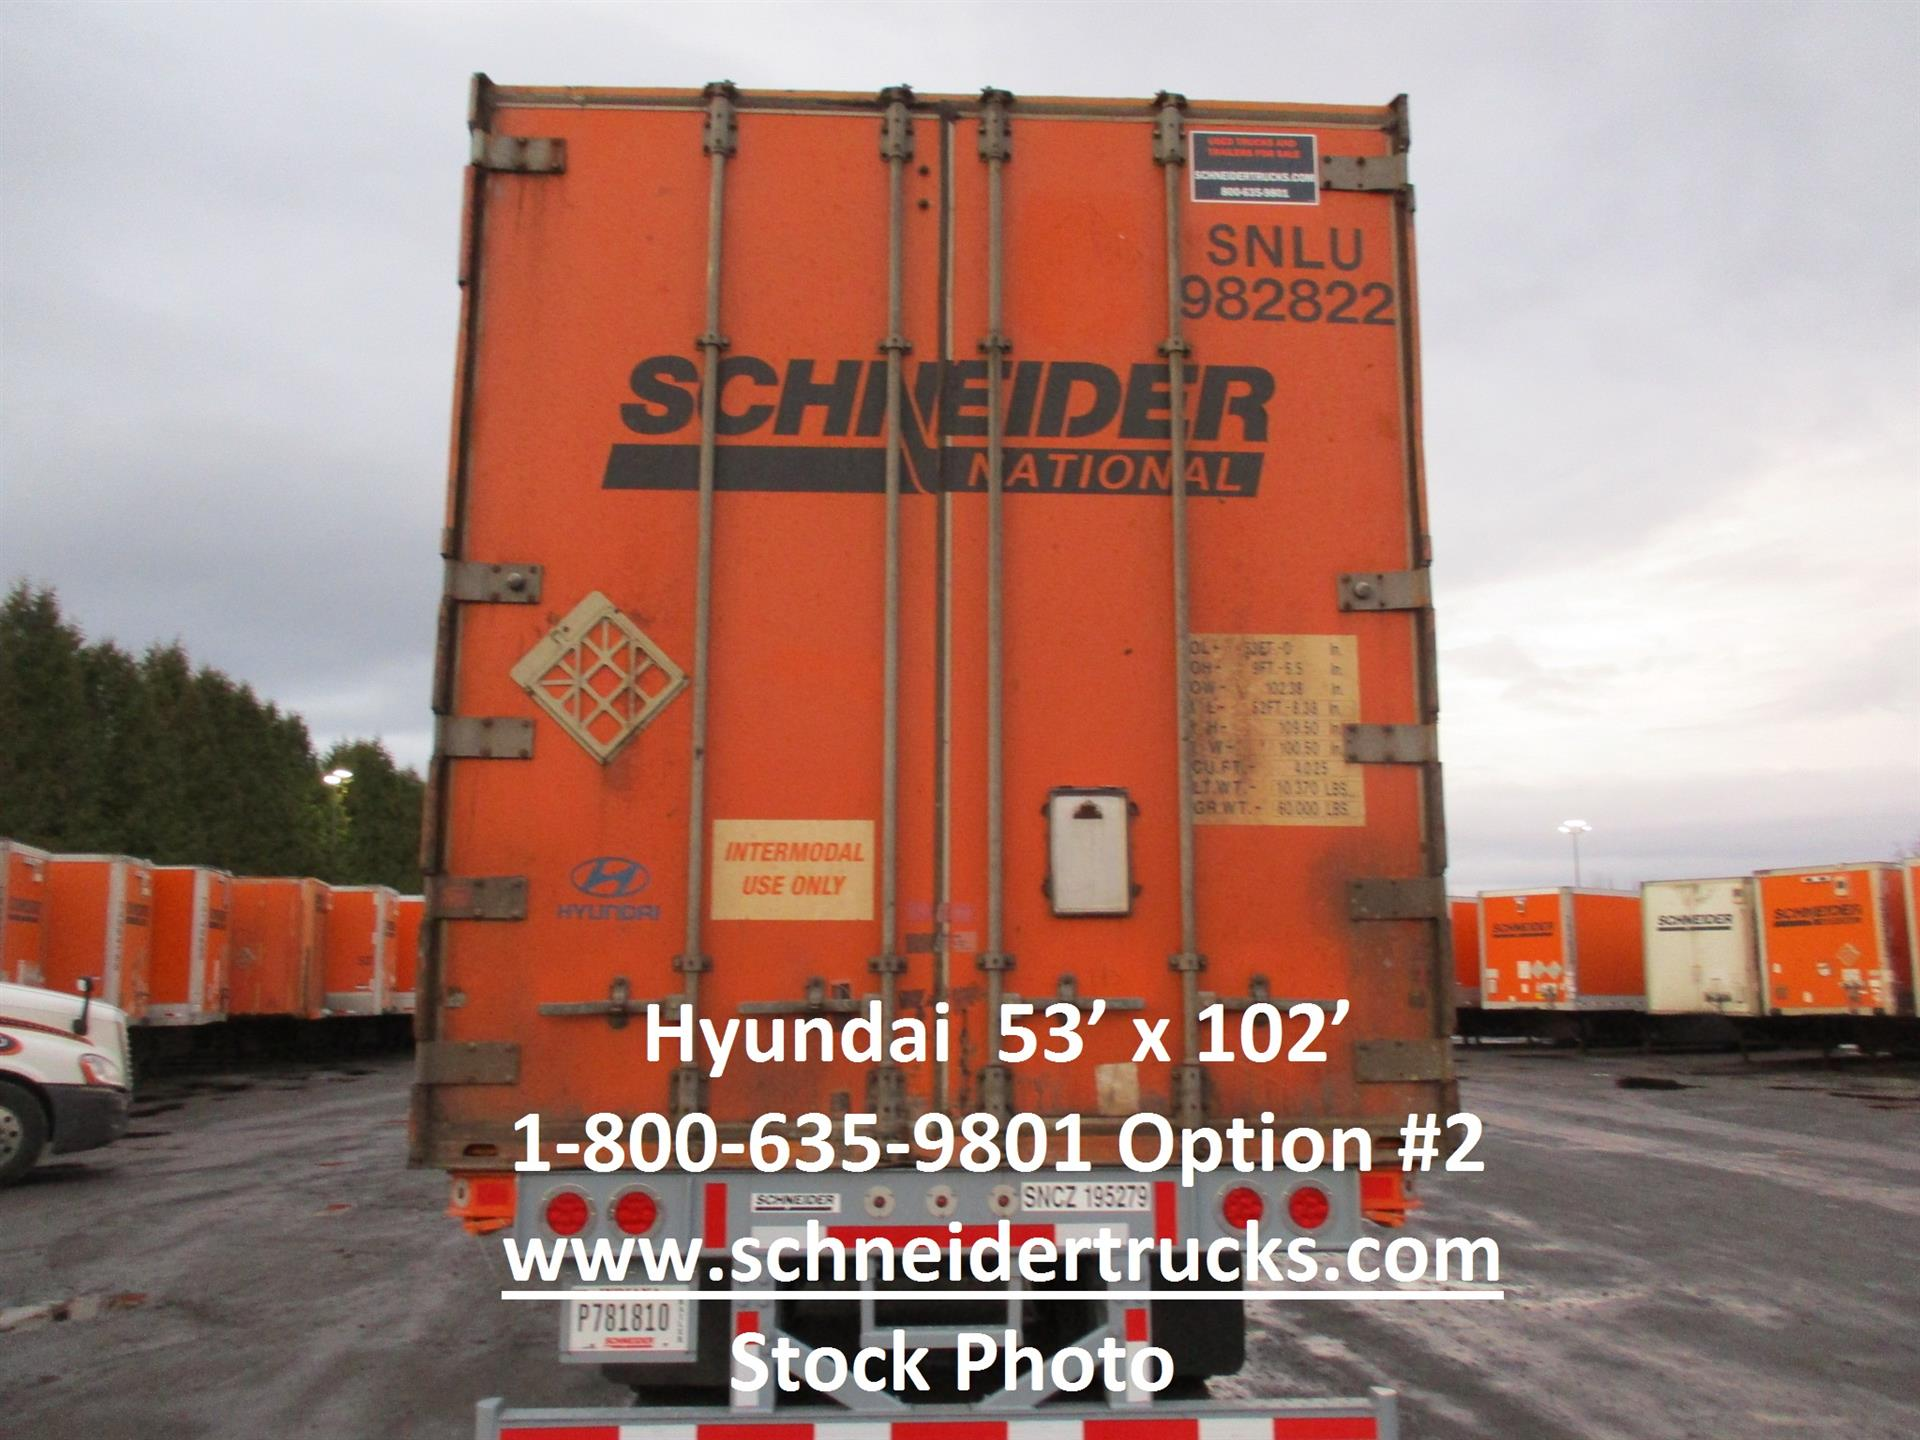 2006 Hyundai Container for sale-59289357